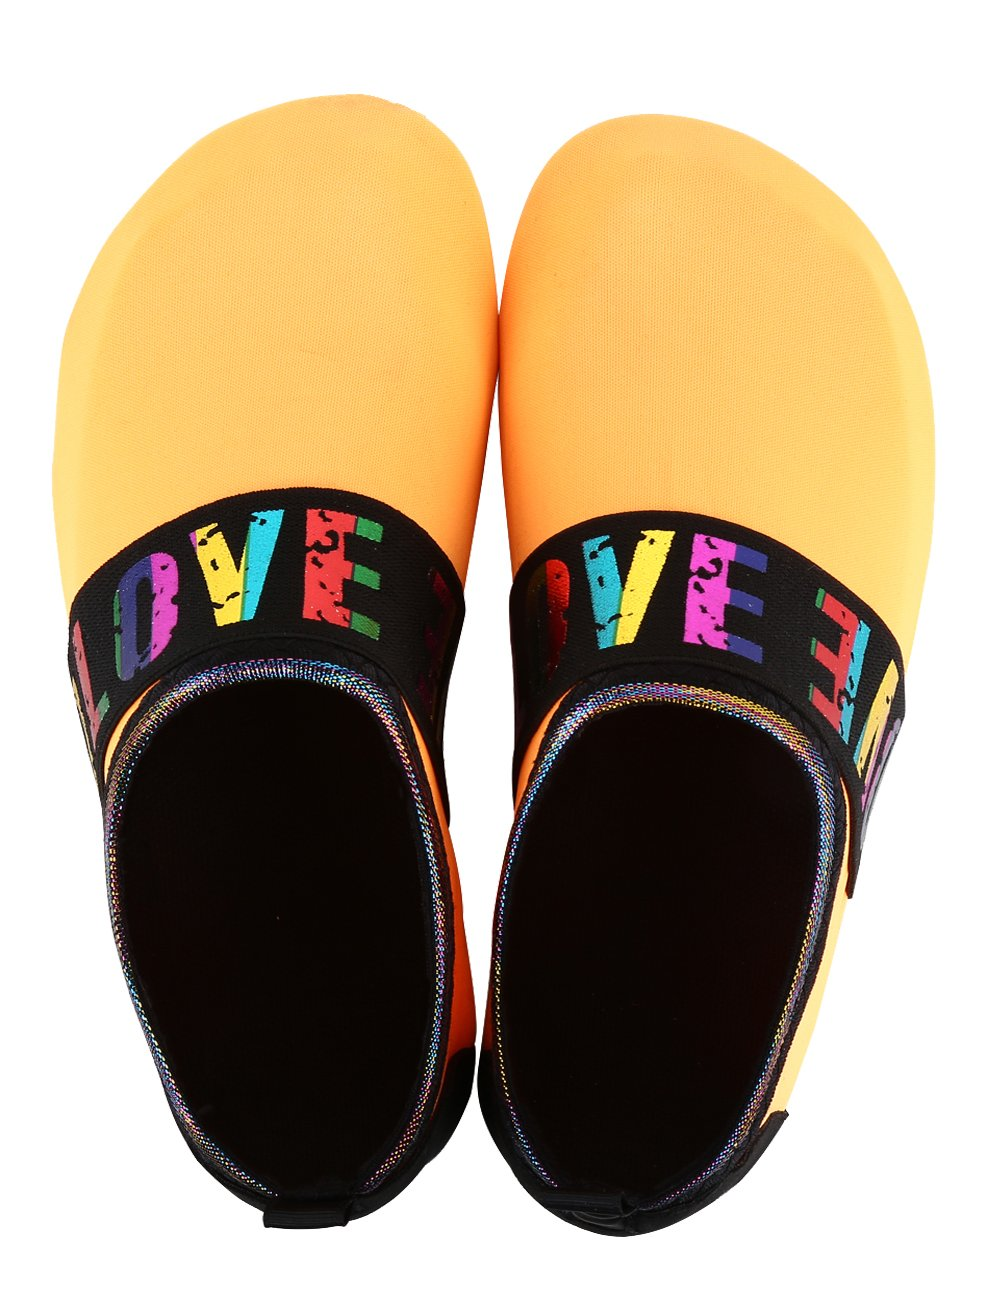 MANYITE Lightweight Water Sports Shoes Anti-Slip Sole Multifunctional Comfortable for Women Men Exercise (EU40/41, Orange-Colorful Love)